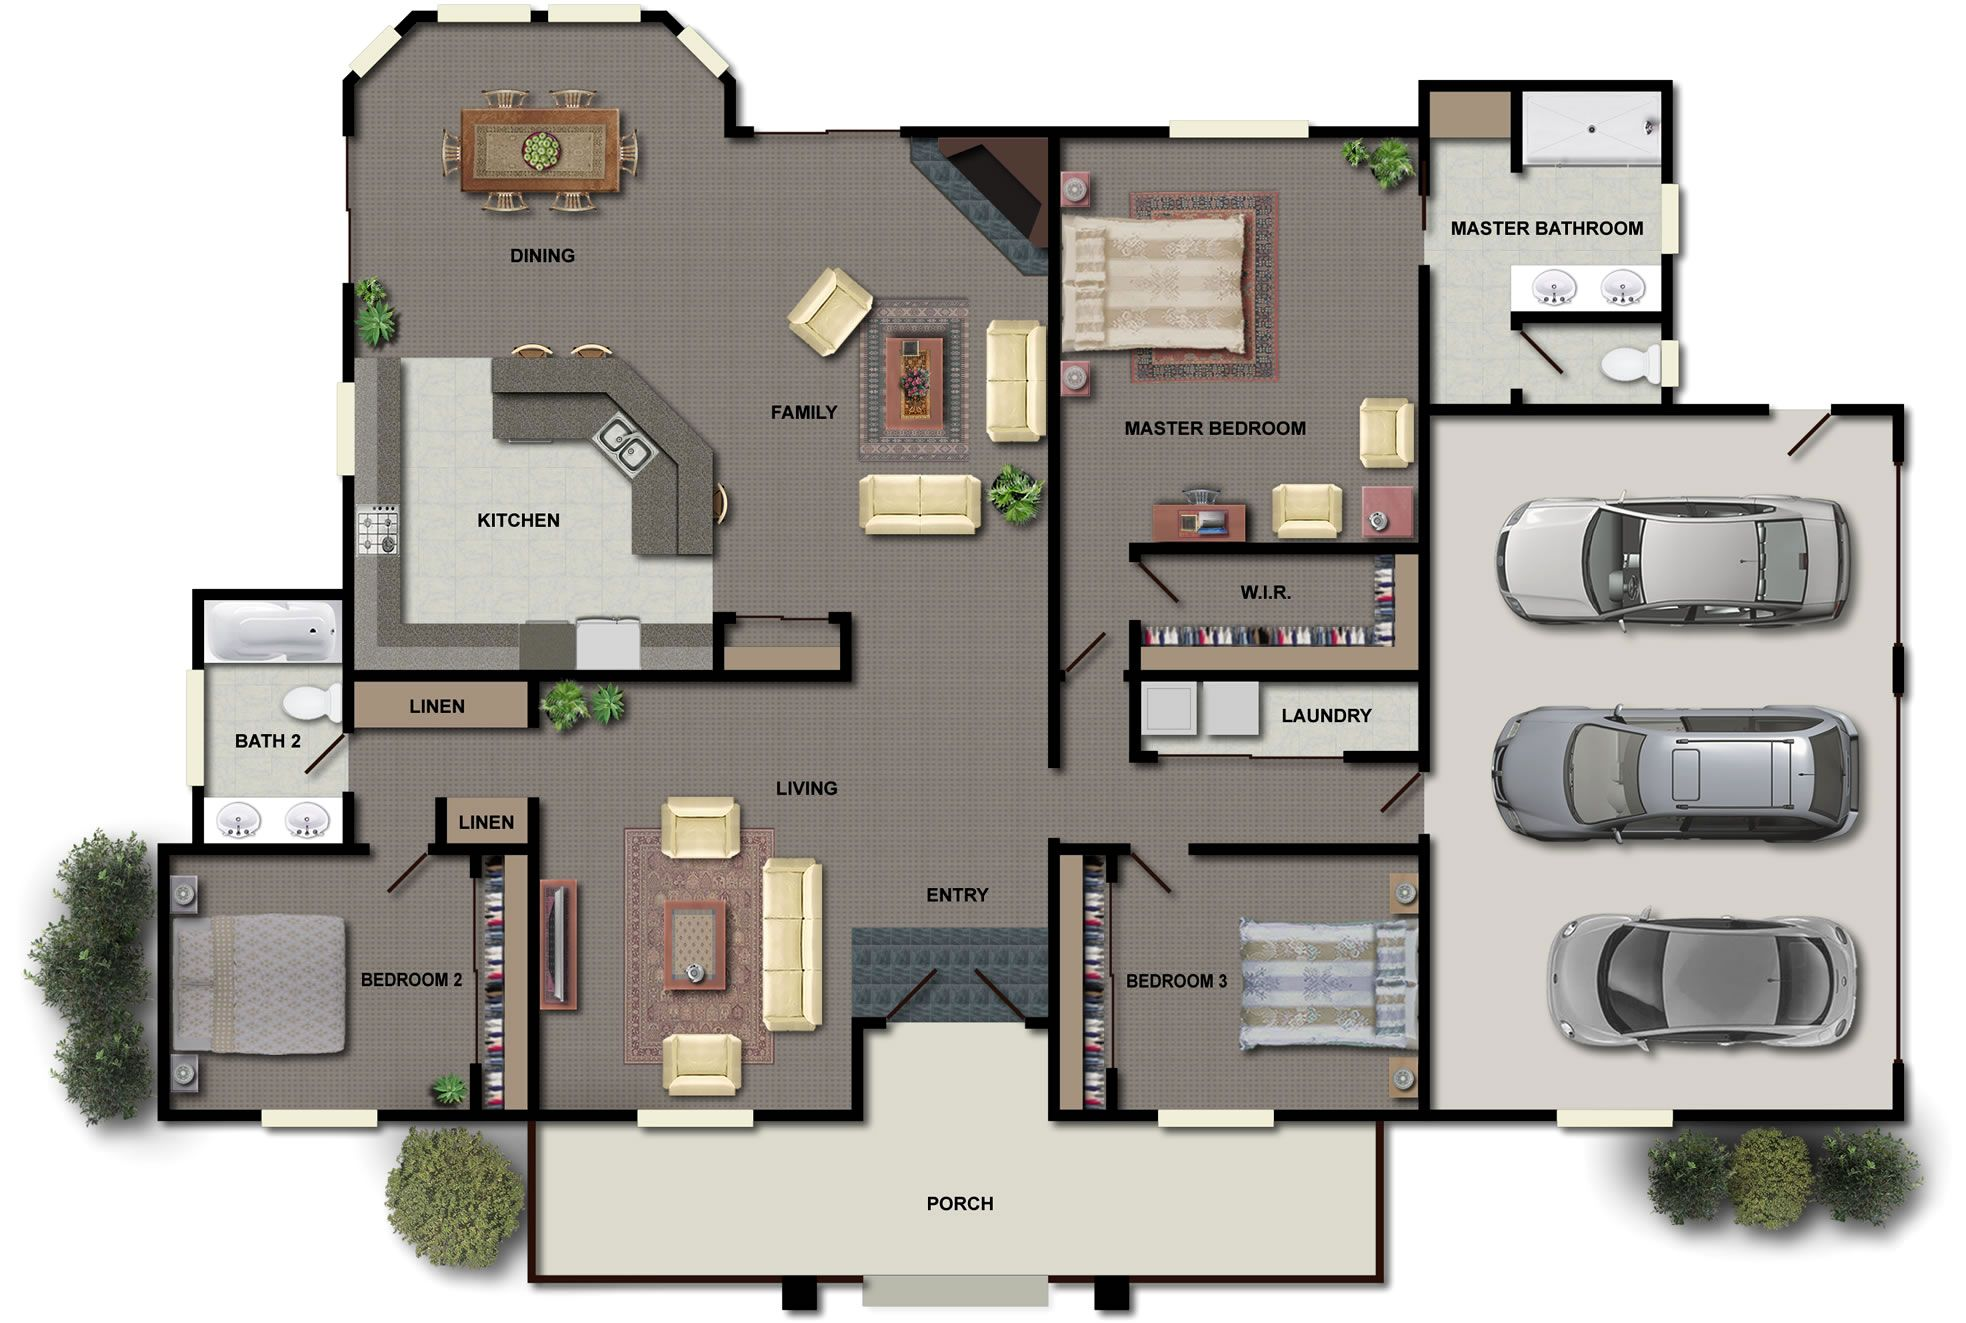 17 Best 1000 images about House Plans on Pinterest House plans Small